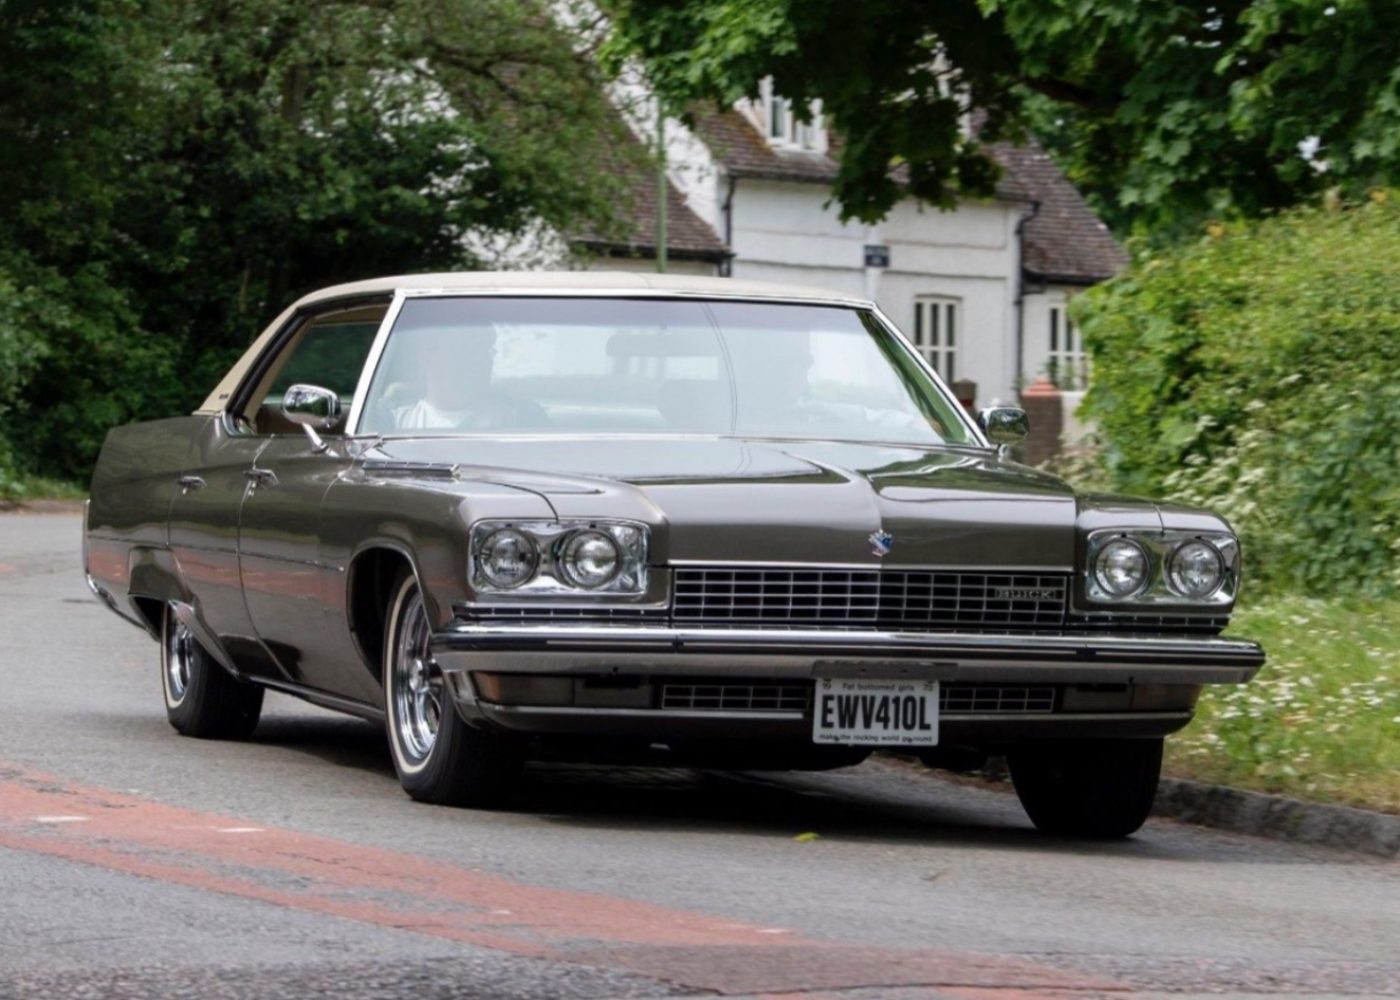 Superb Condition Electra Buick 1972